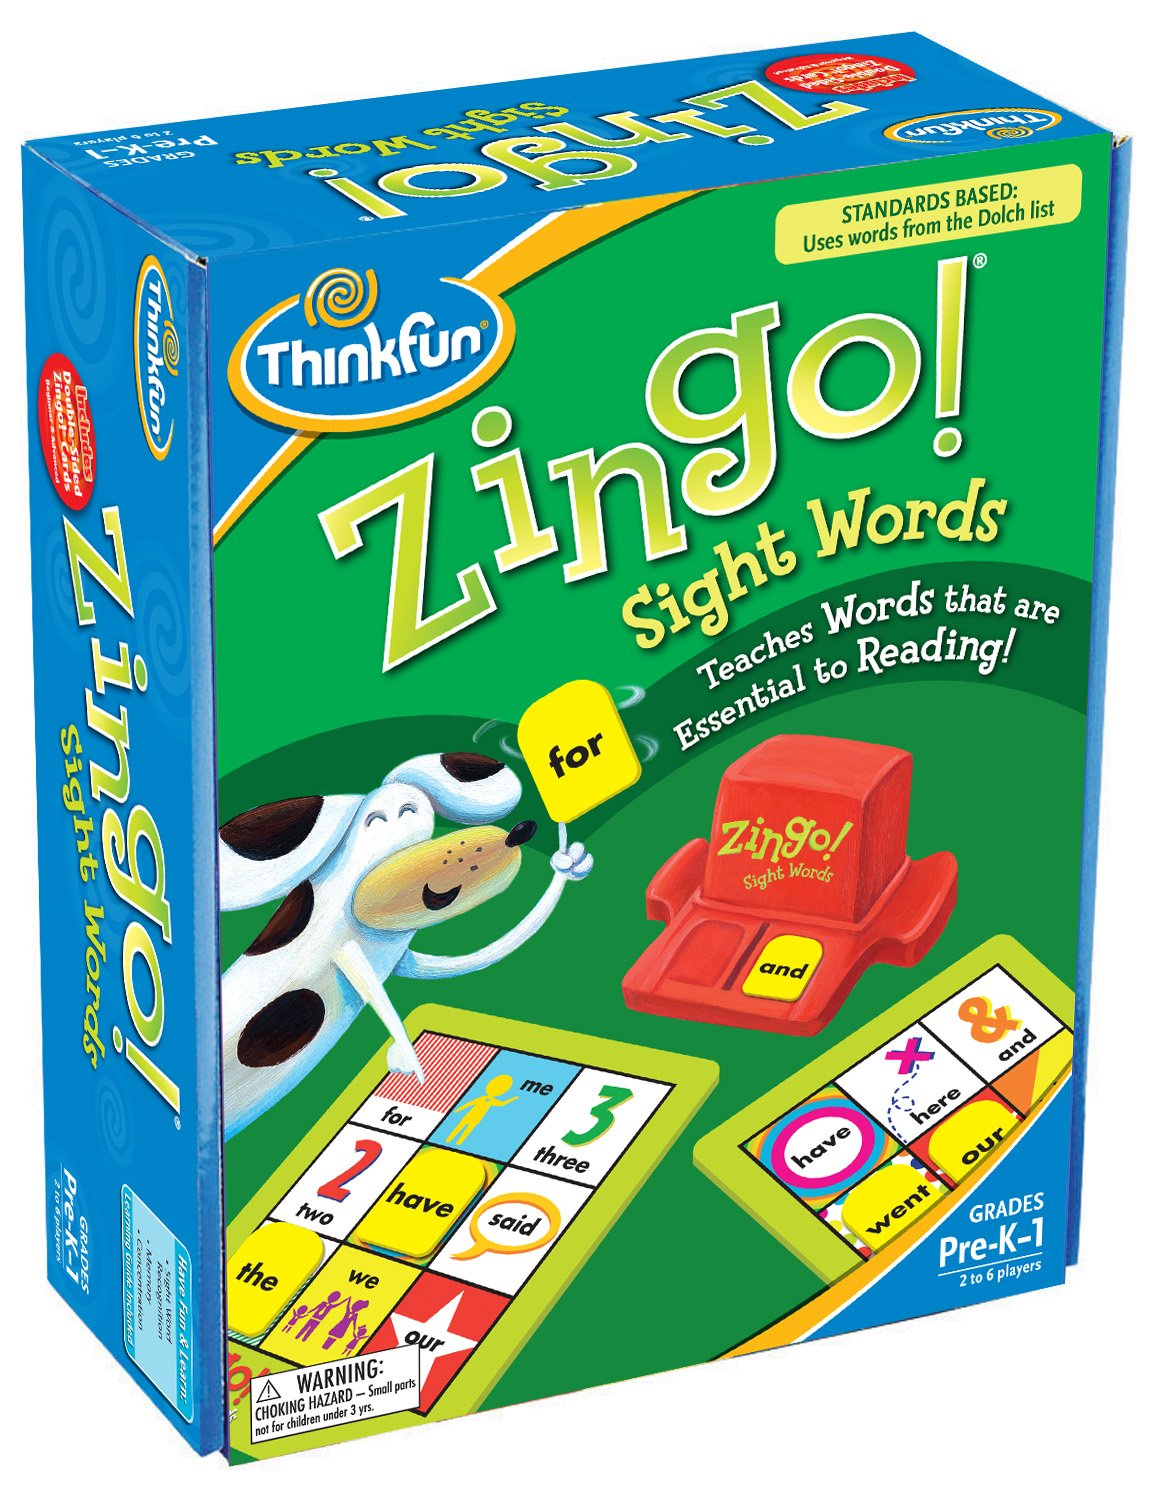 Think Fun Zingo Sight Words Early Reading Game - Toy of the Year Finalist, Developed by Educators for Pre-K to 2nd Graders by Think Fun (Image #2)